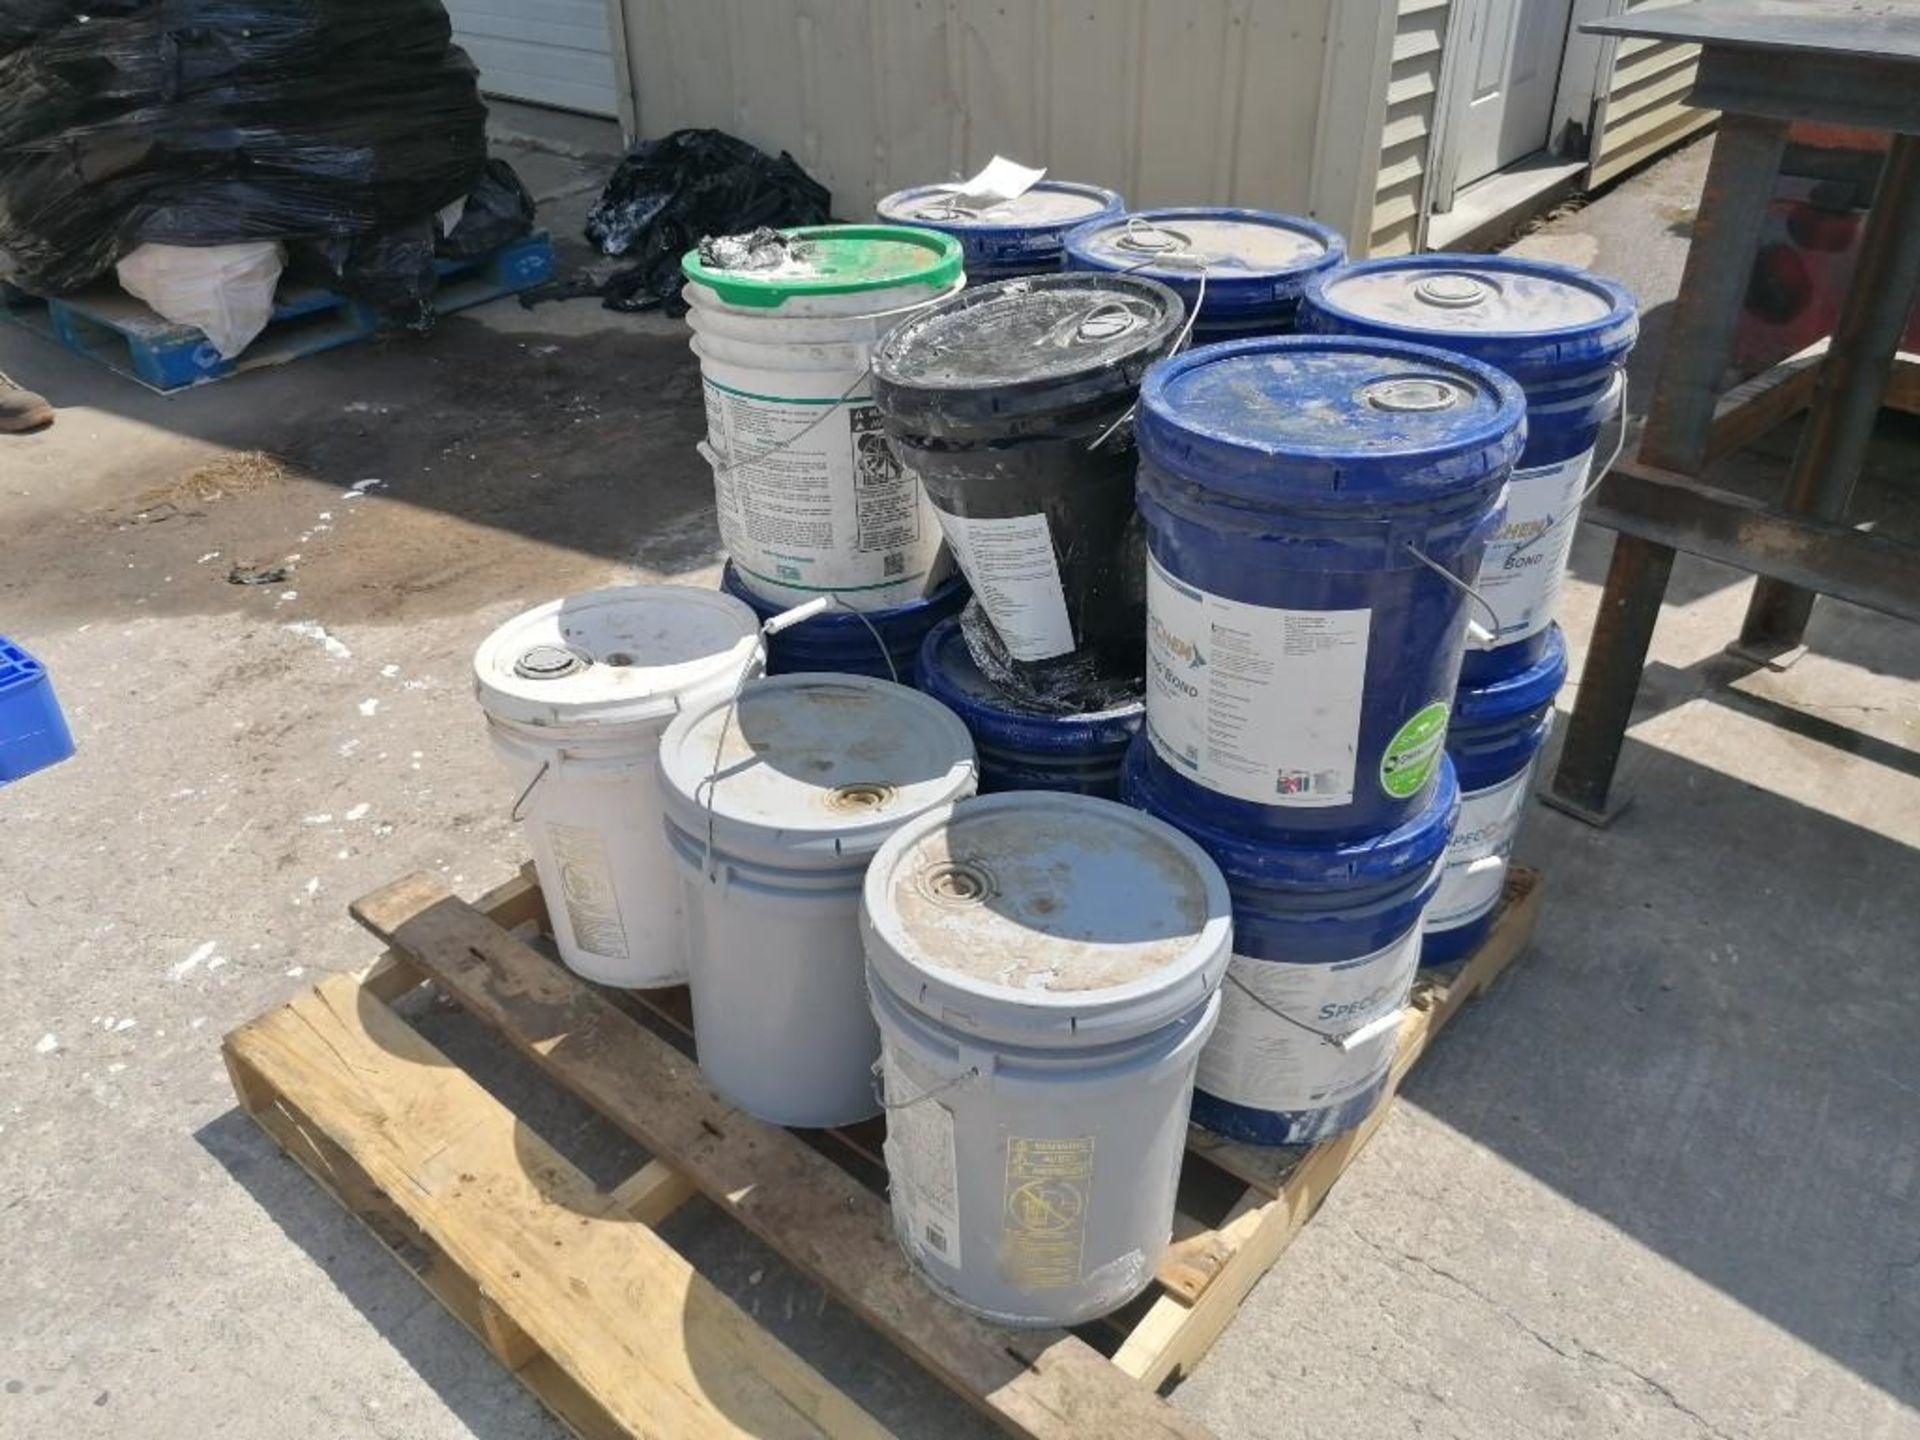 Lot 743 - (15) 5 GAL Buckets of Strong Bond Acrylic Bonding and Admixture. Located at 301 E Henry Street,